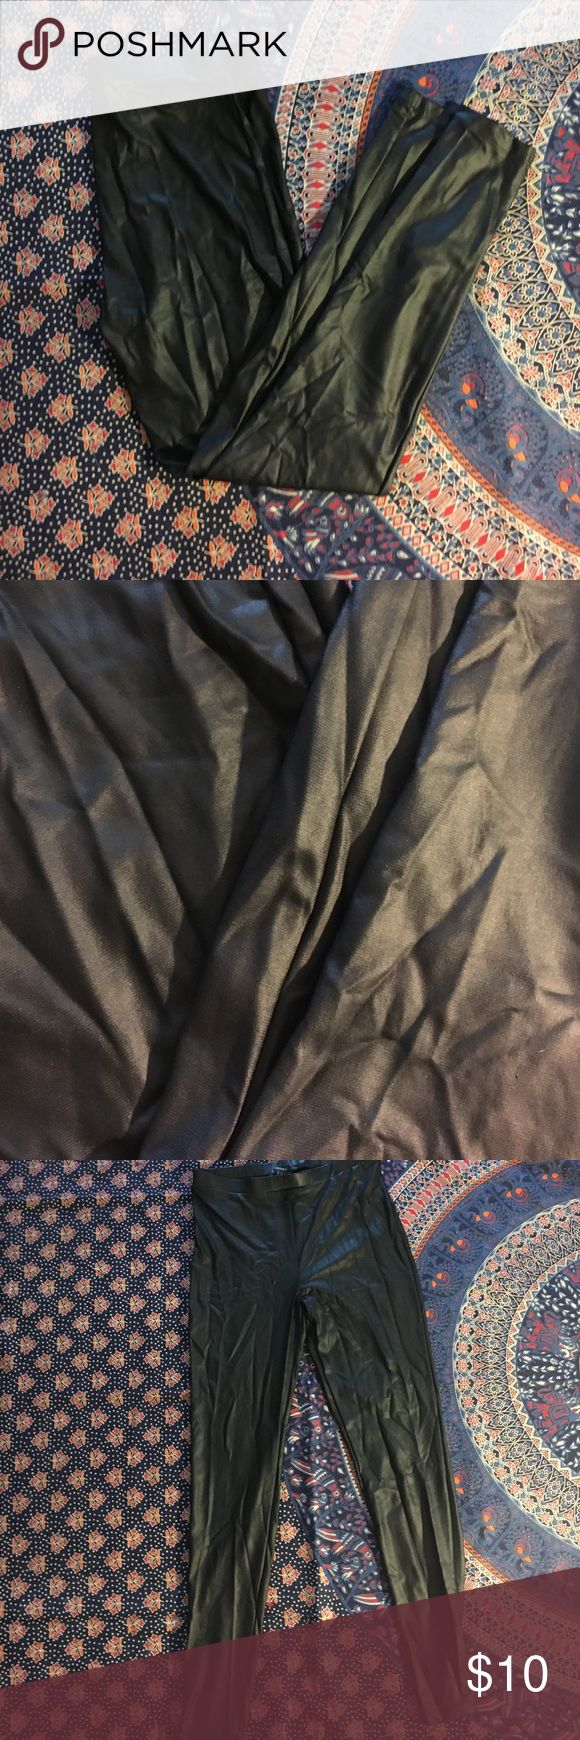 Faux leather leggings Faux Leather leggings from forever 21 worn only once for a Halloween costume as seen in pictures. They look a lot better when worn the pictures didn't do it justice so I added a pic of them being worn. Forever 21 Pants Leggings